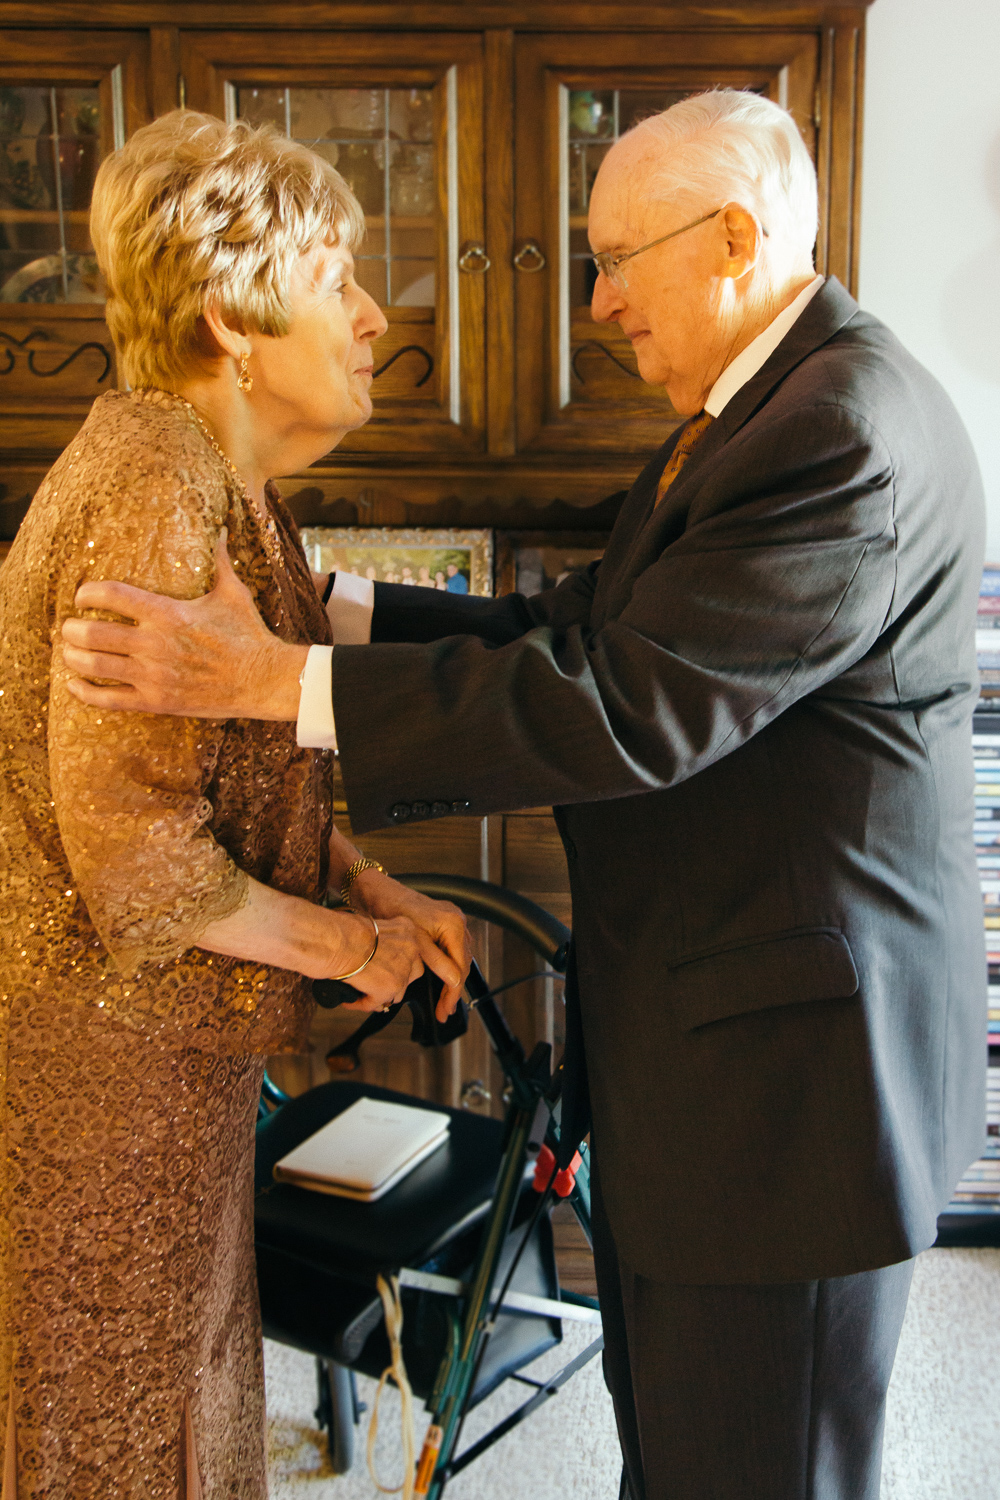 elderly_wedding-8.jpg